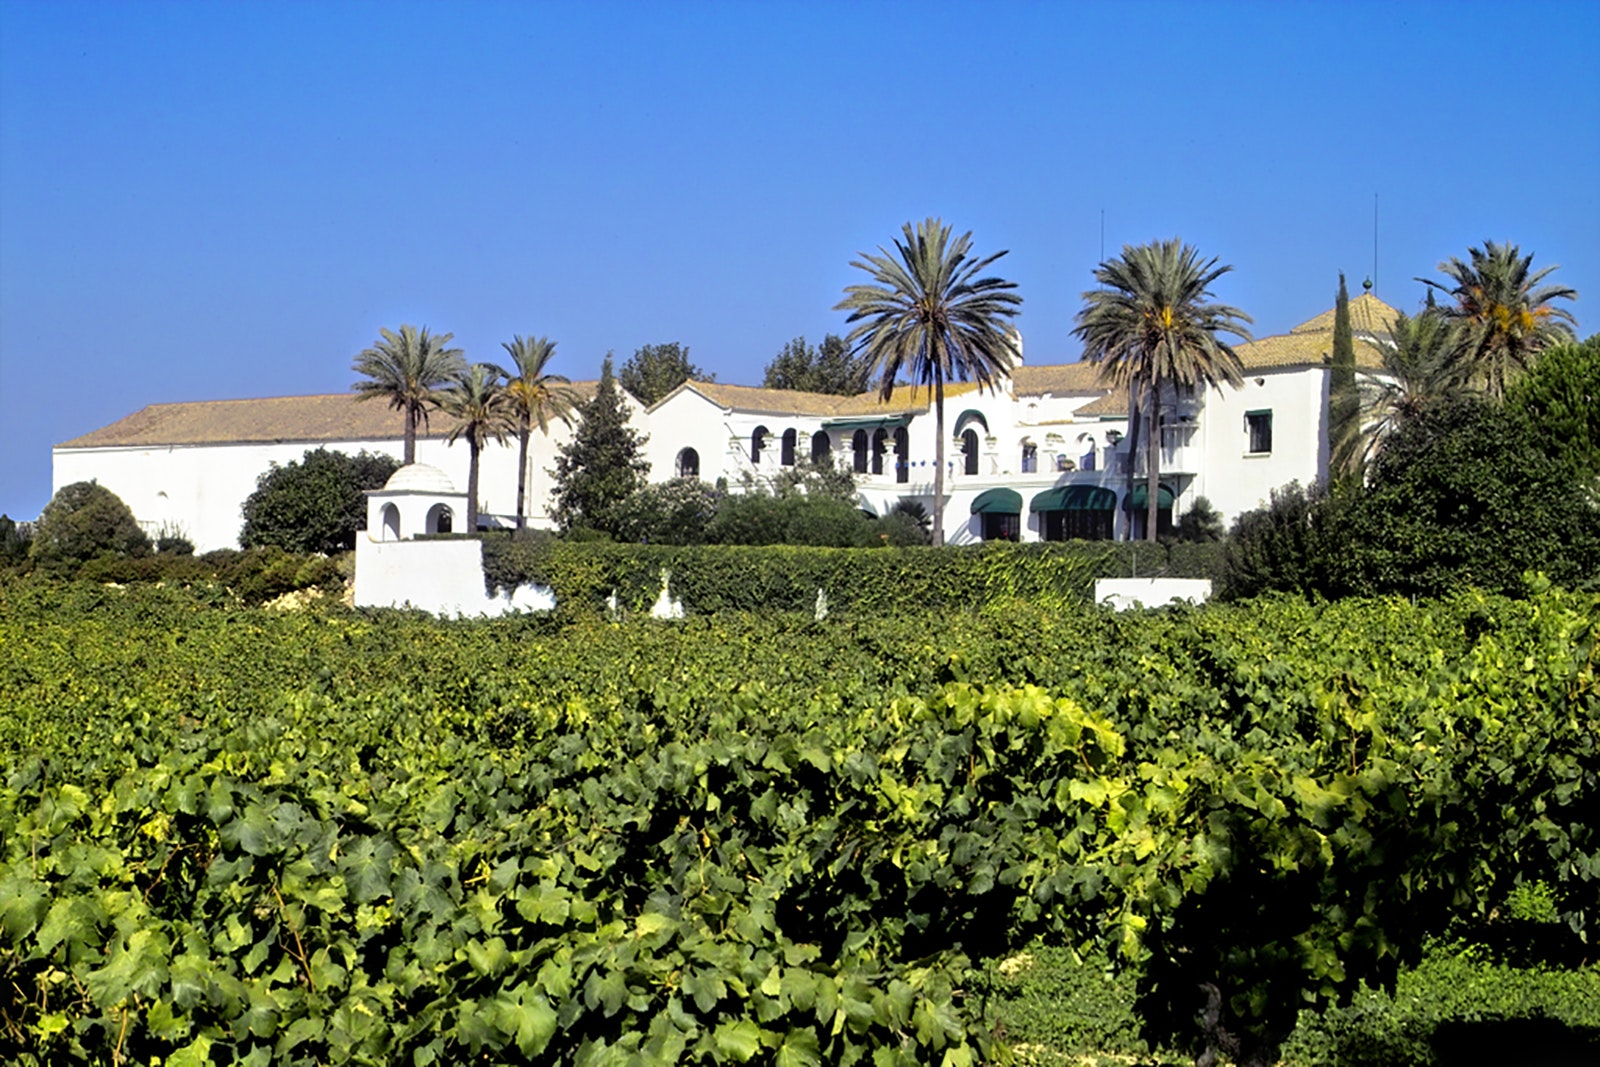 Finca Viladellops, which dates back to 1877, produces organic wines.